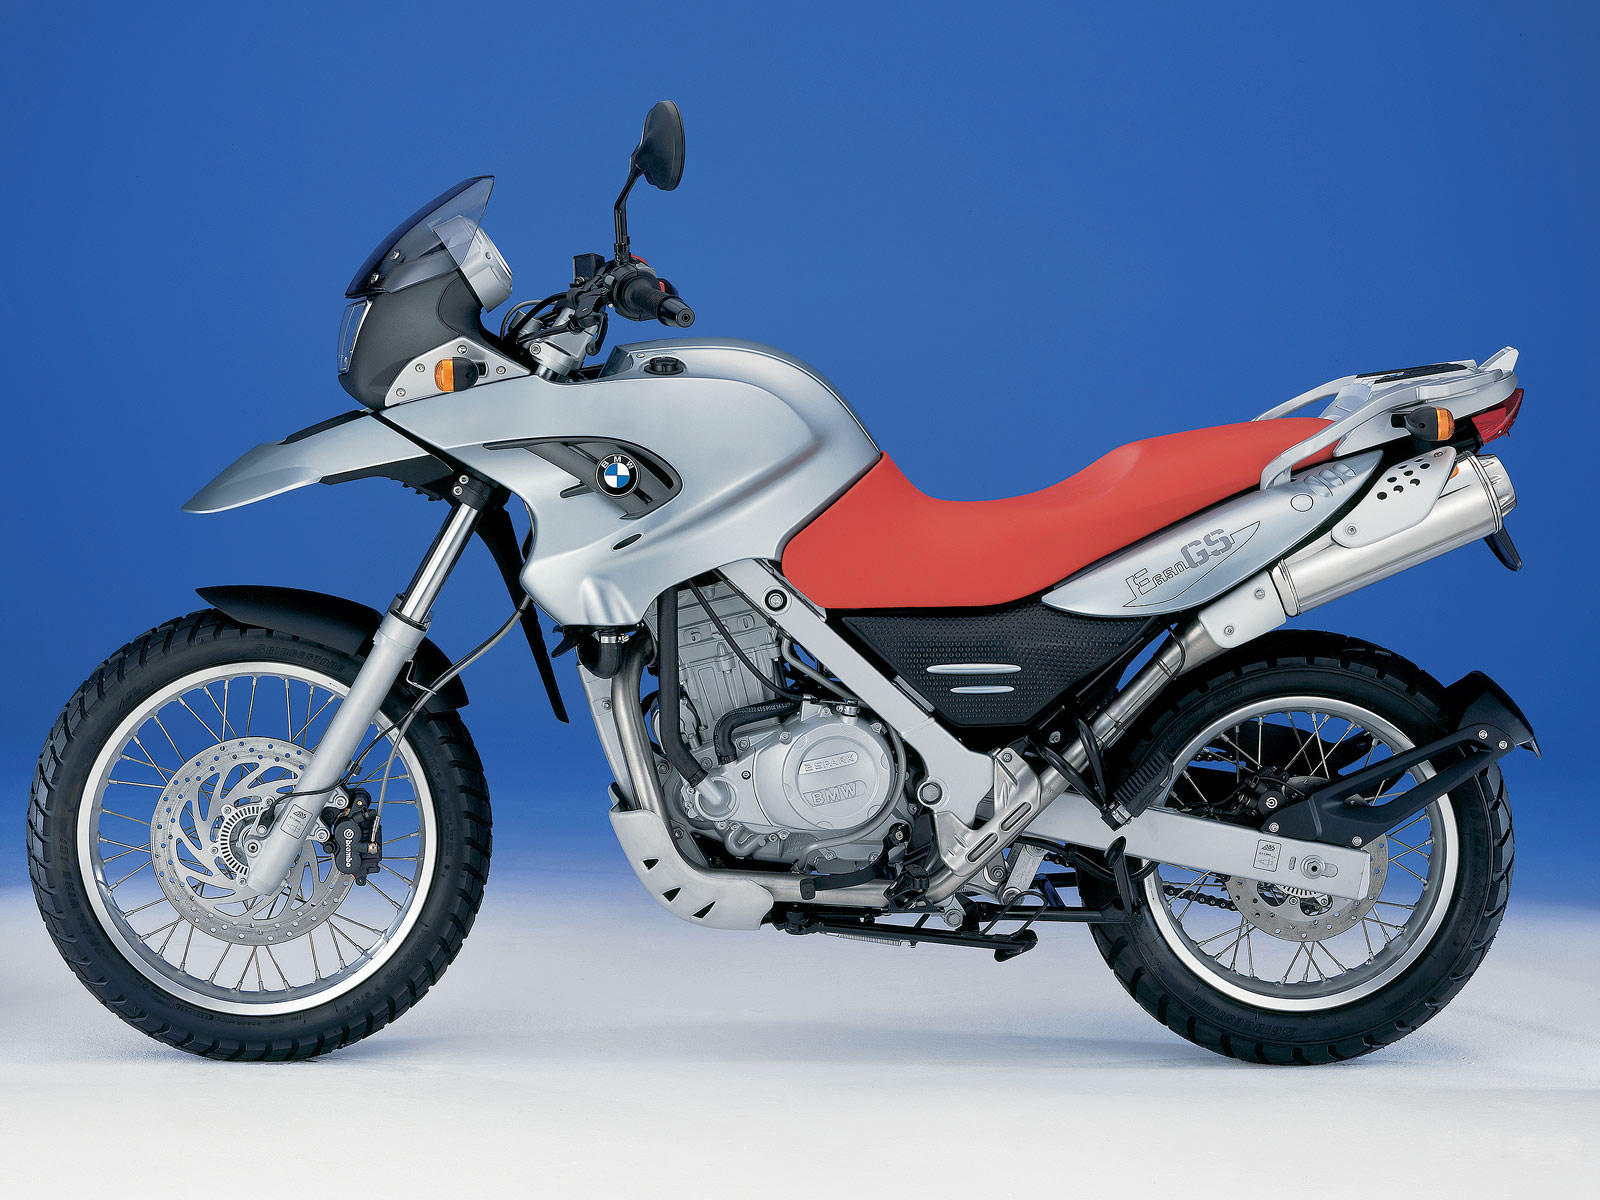 Motorcycle Dealers In Ma >> 2004 F650GS BMW automotive. Motorcycle Insurance Information